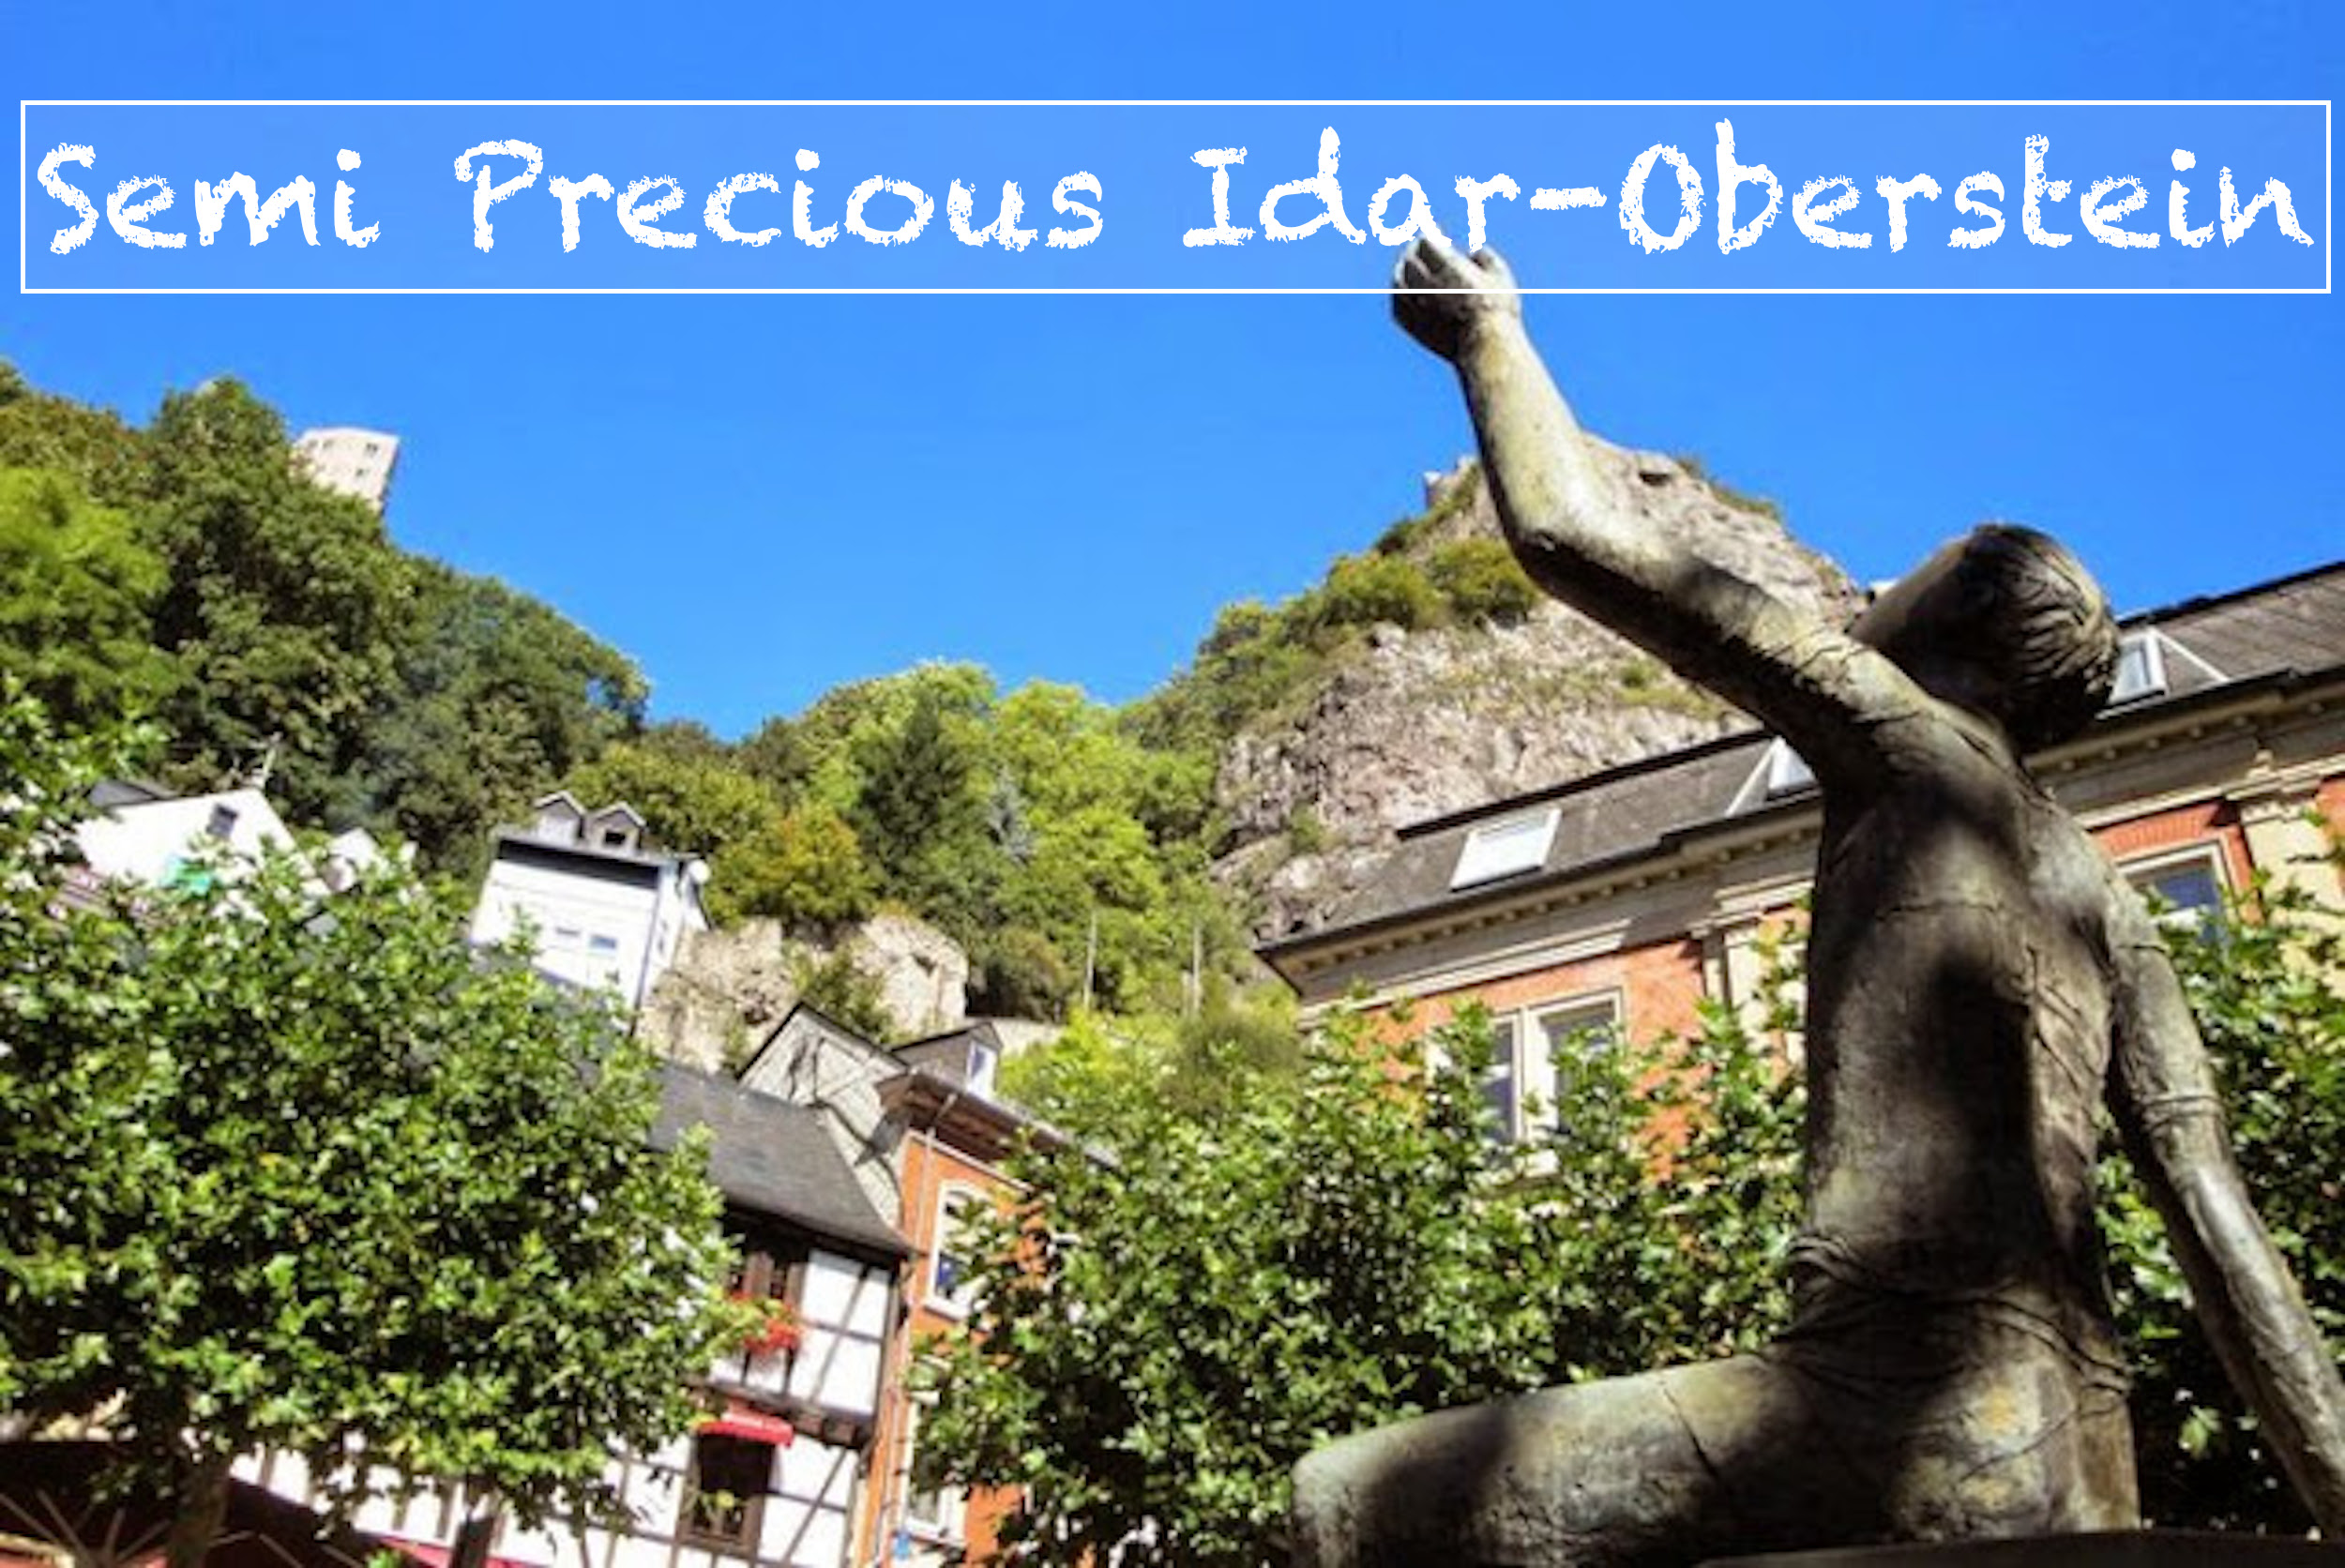 Single idar-oberstein